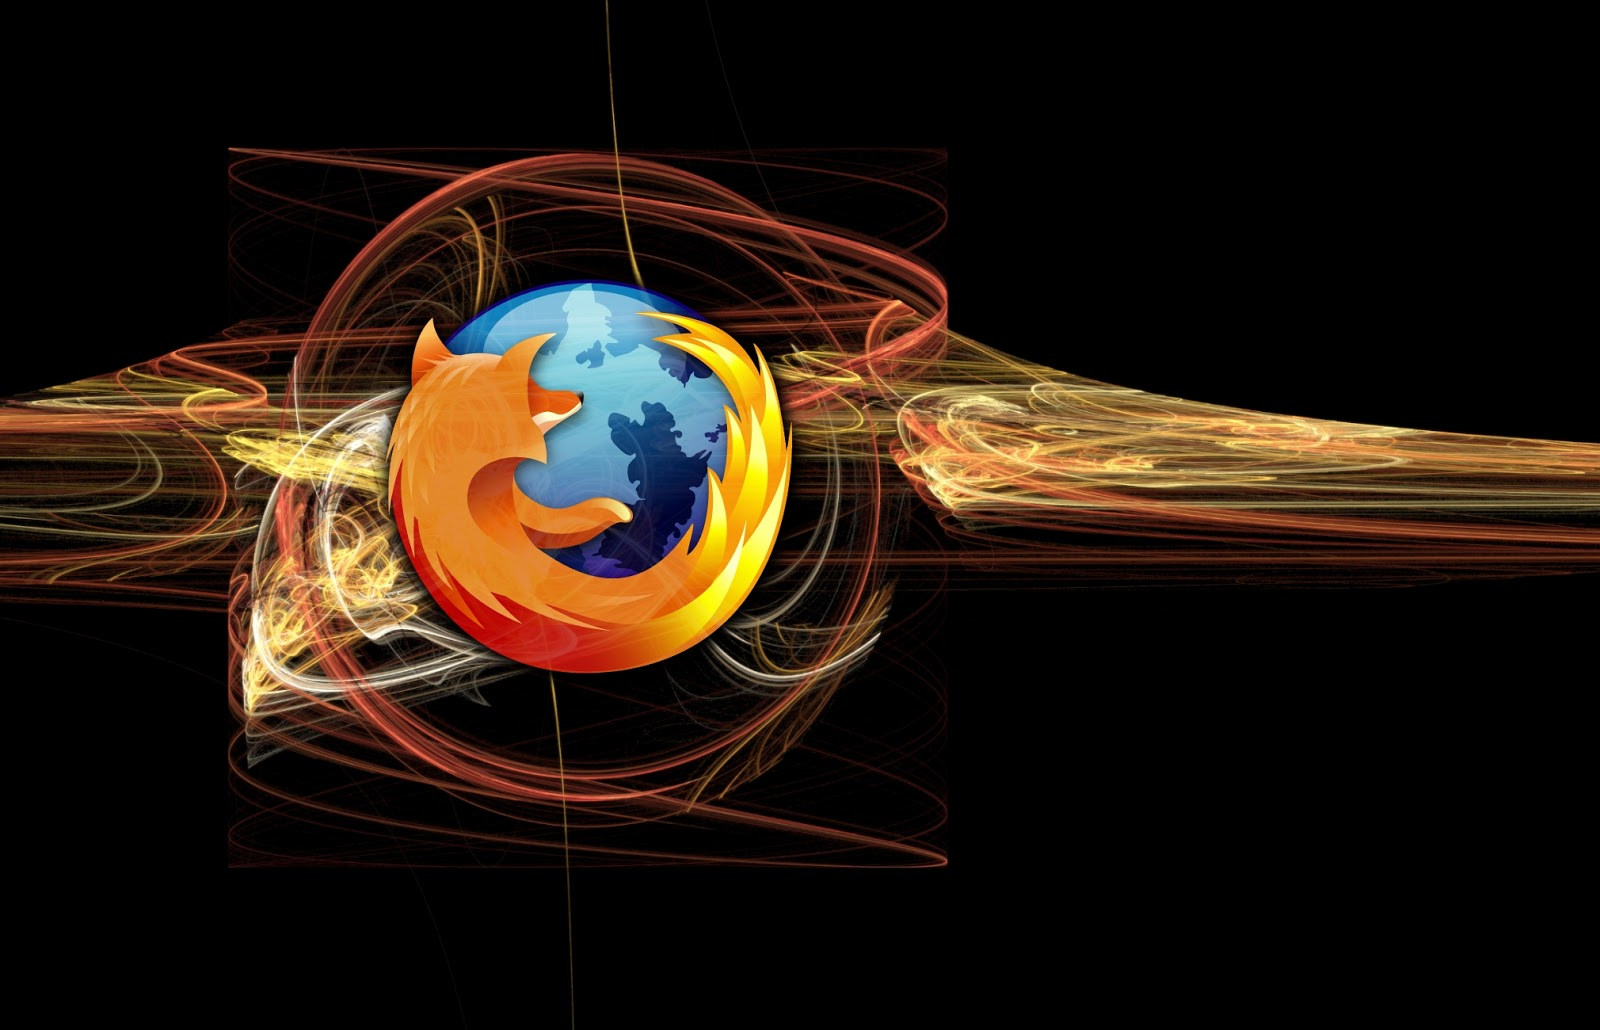 3d Server Wallpaper Free Download Mozilla Firefox Browser And Wallpapers